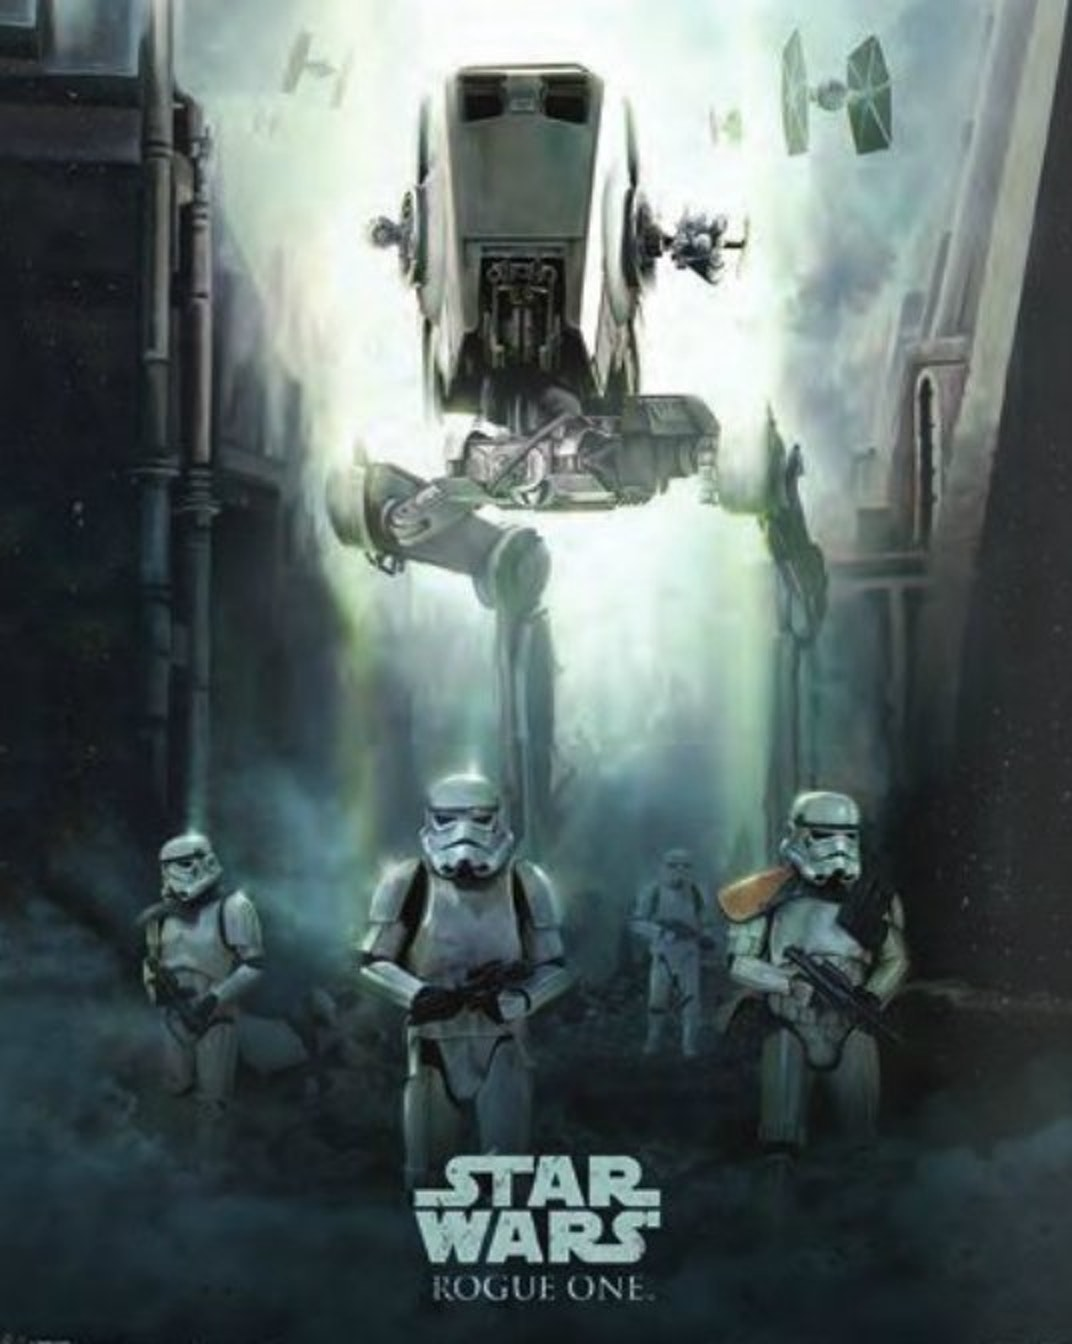 The new art in featuring the AT-ST